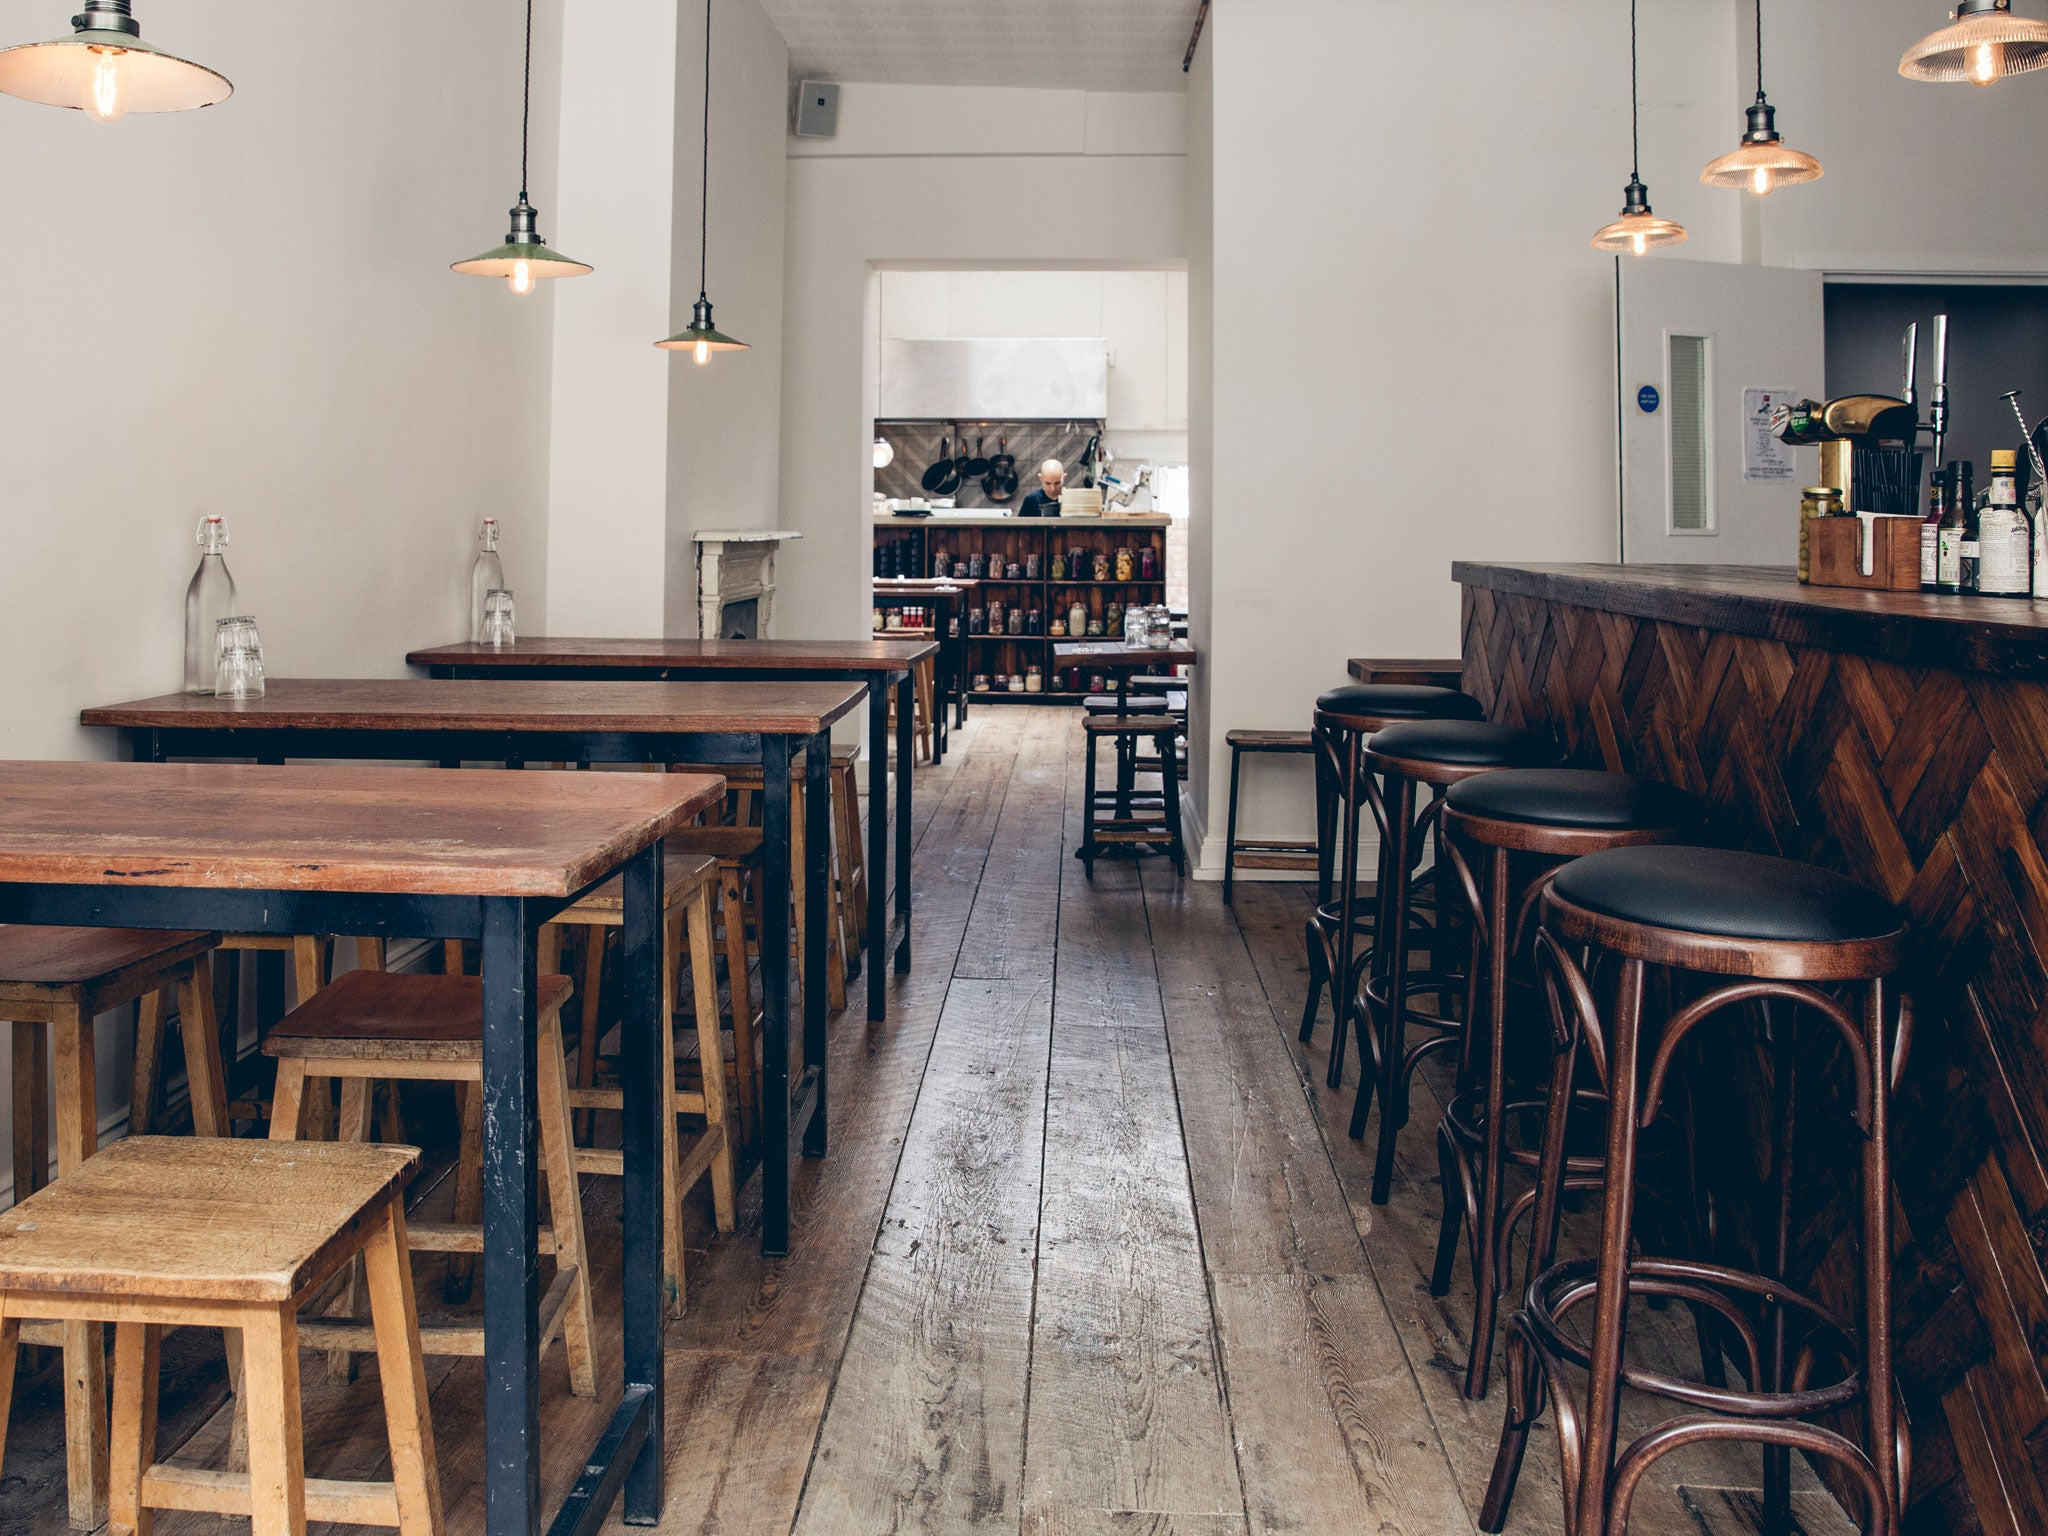 Kitchen Table London Review Rok Smokehouse Restaurant Review Ollie Dabbous Protcgc Matt